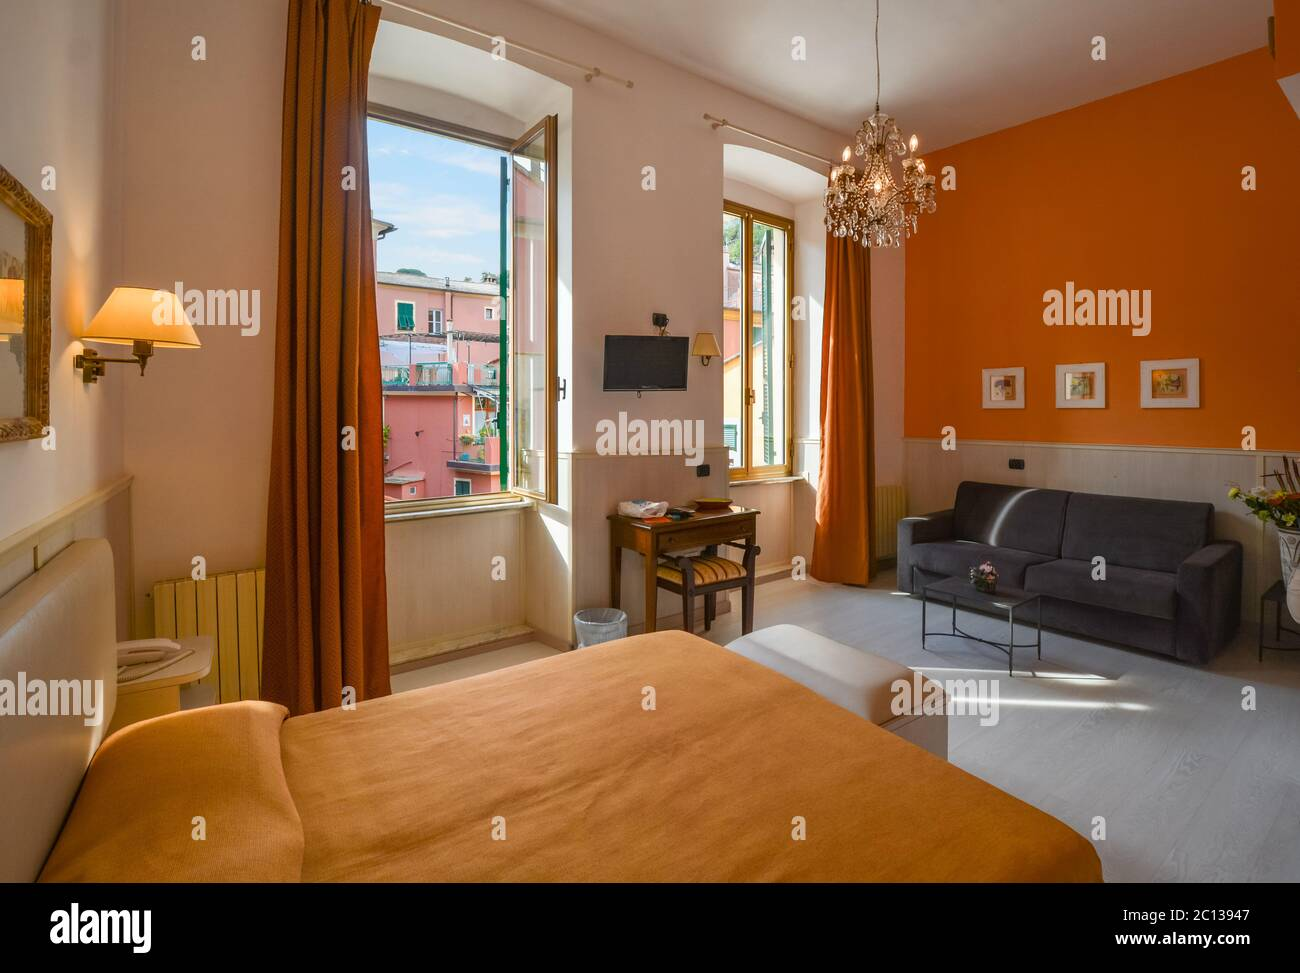 A bright room with large windows and a high ceiling overlooking a colorful Italian village. Stock Photo